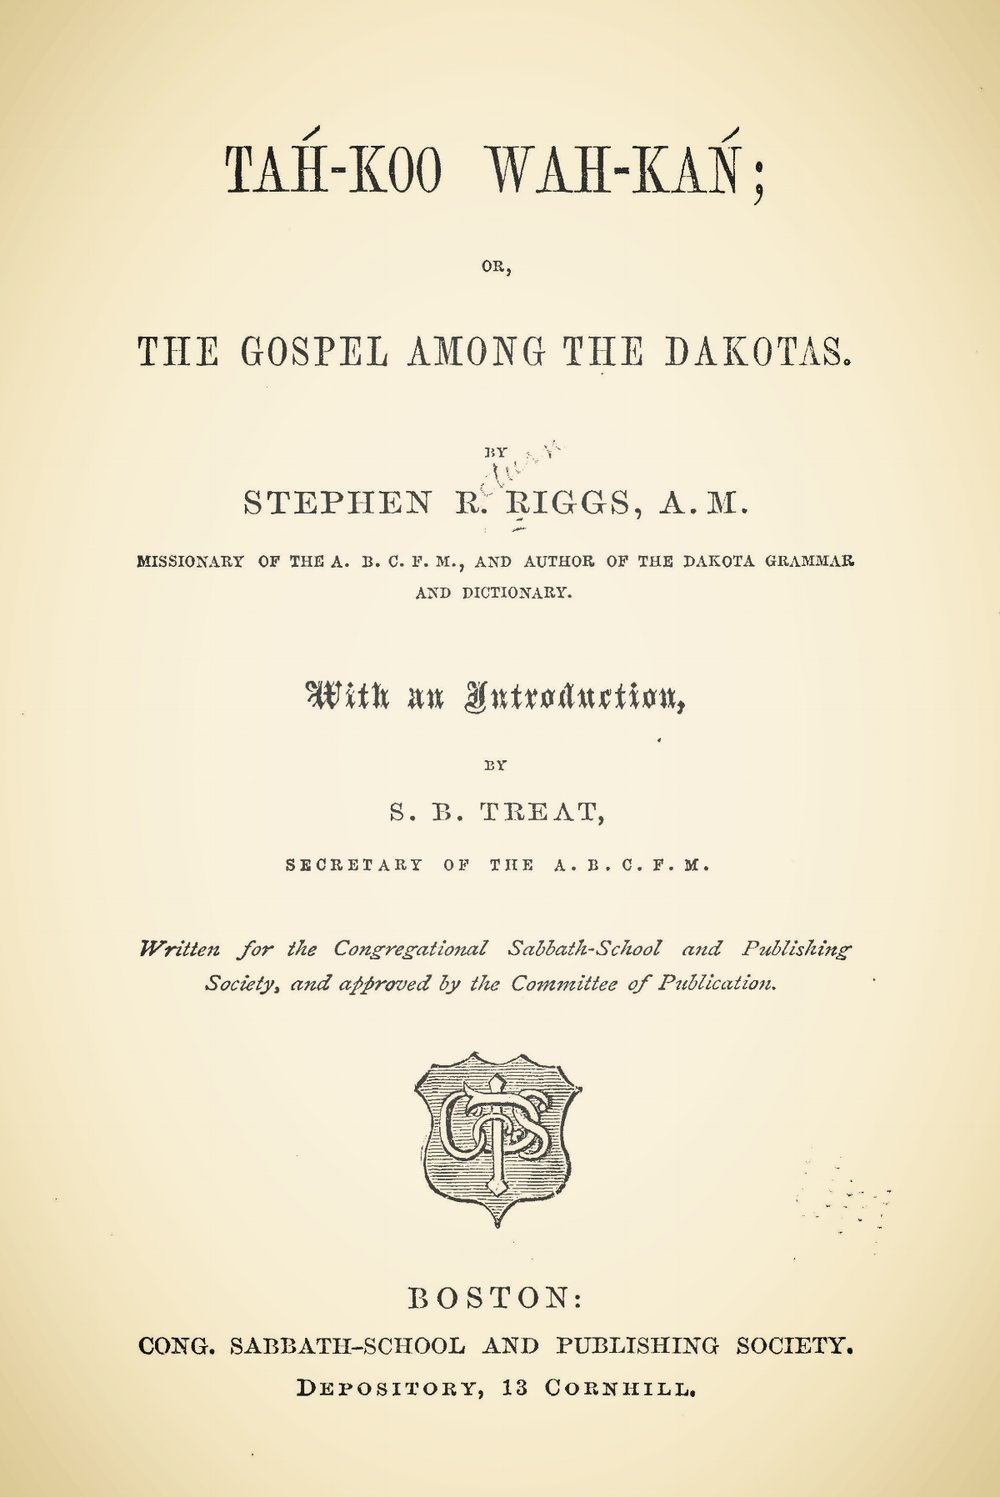 Riggs, Stephen Return, Tah-Koo Wah-Kan; or, The Gospel Among the Dakotas Title Page.jpg